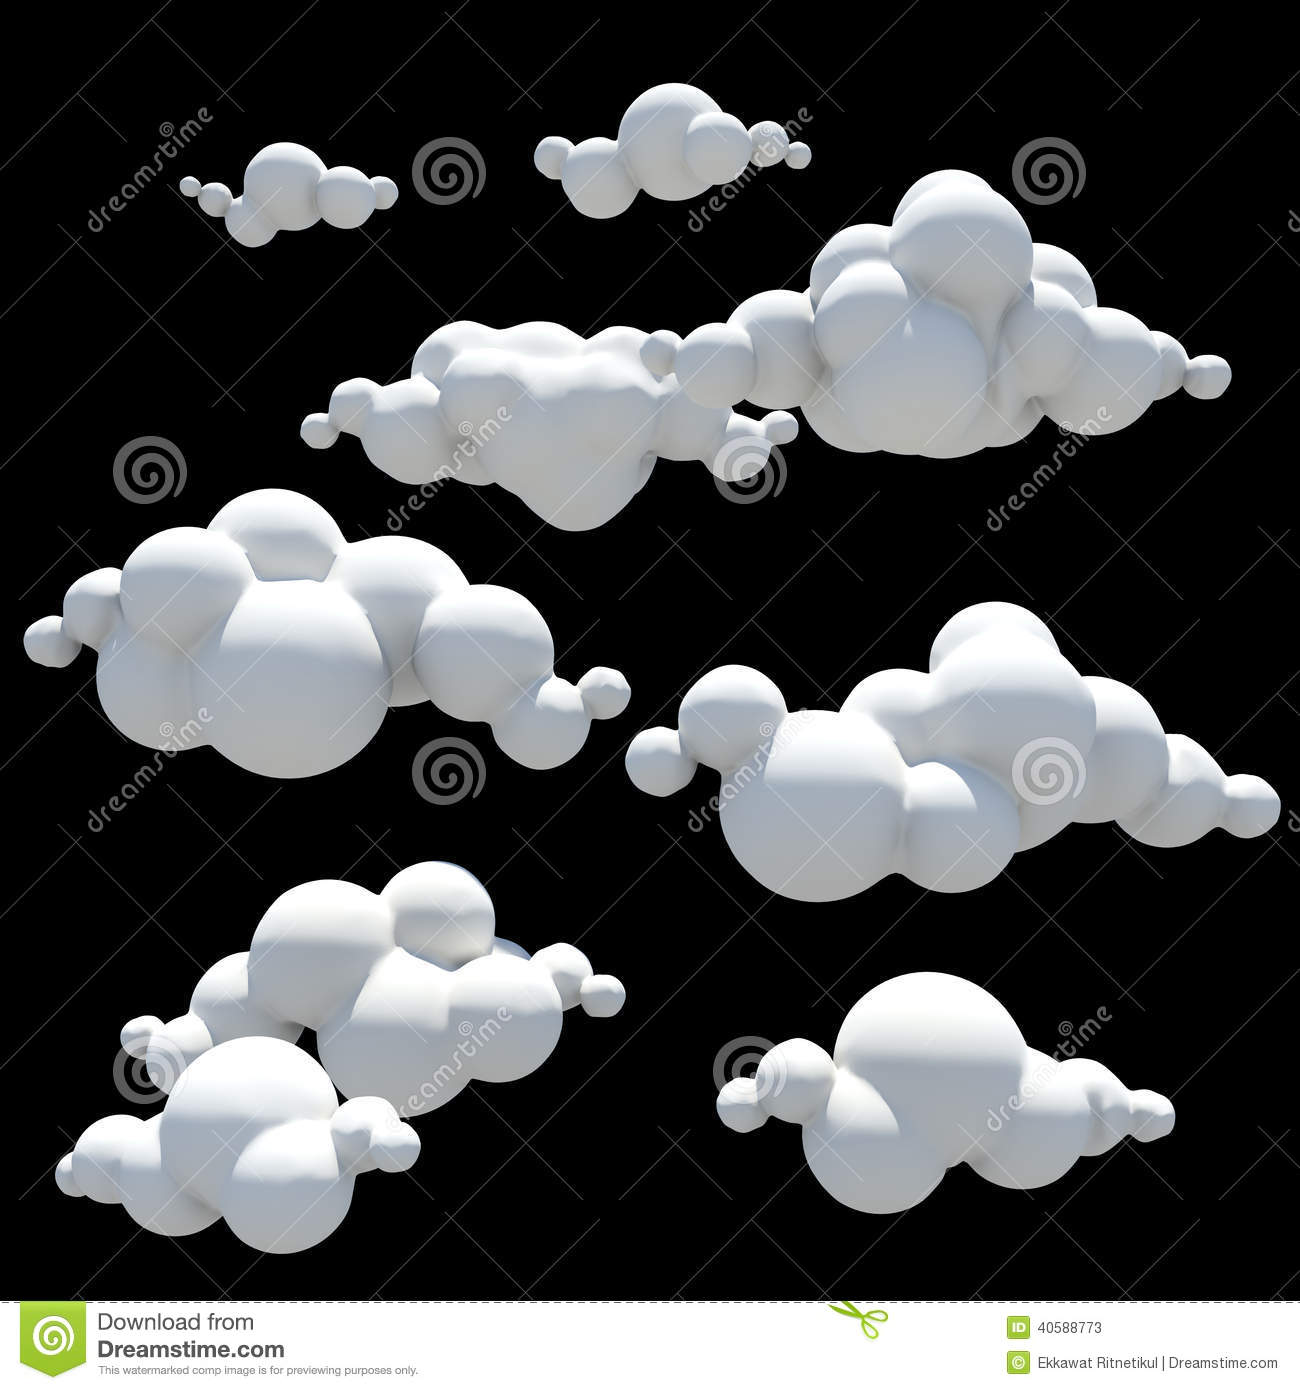 cartoon clouds design element png transparent background